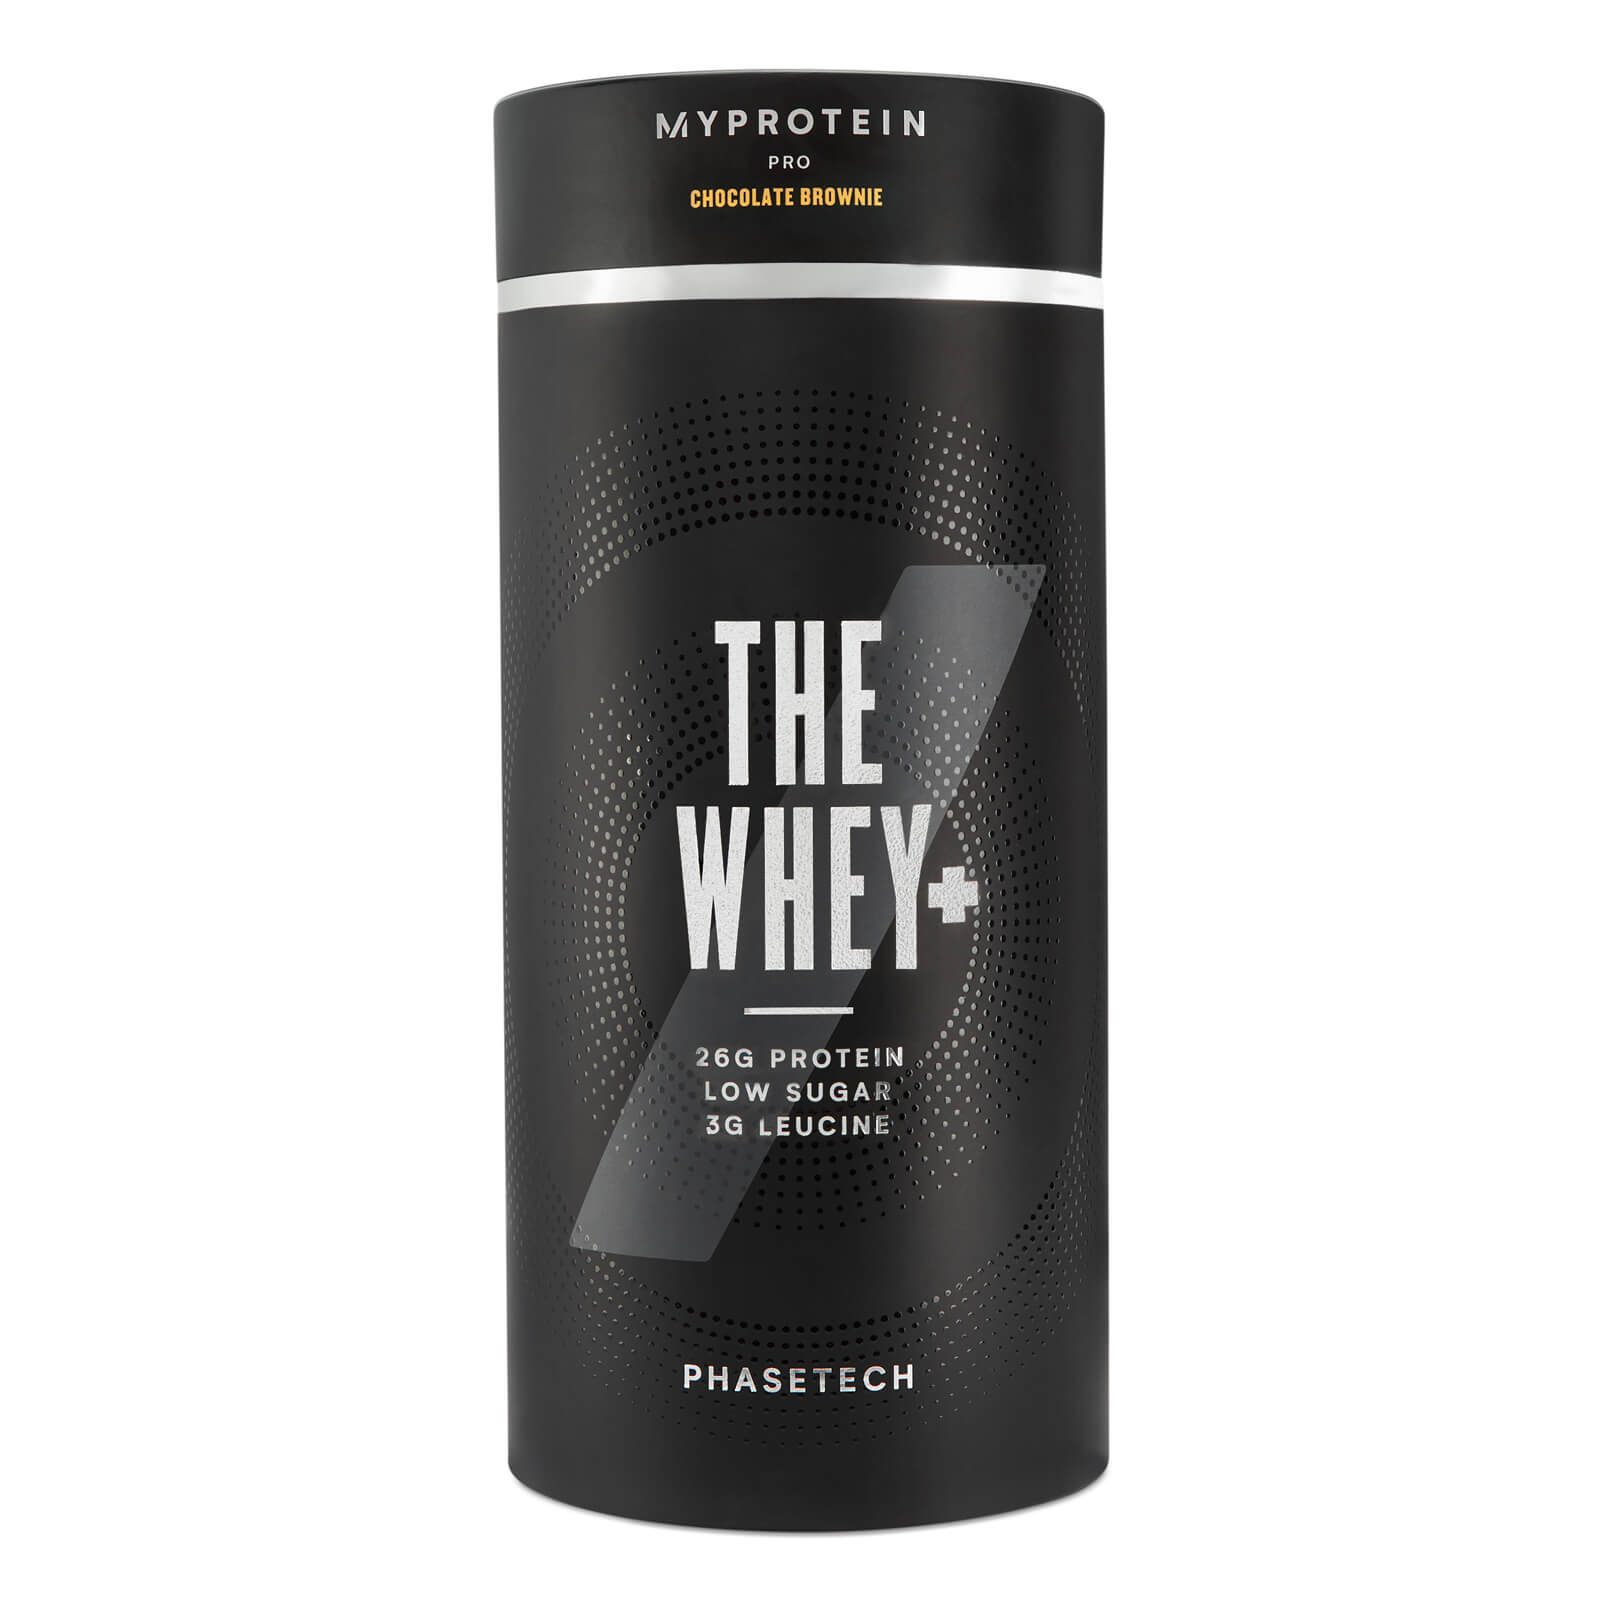 THE Whey+, Chocolate Brownie - 30 Servings